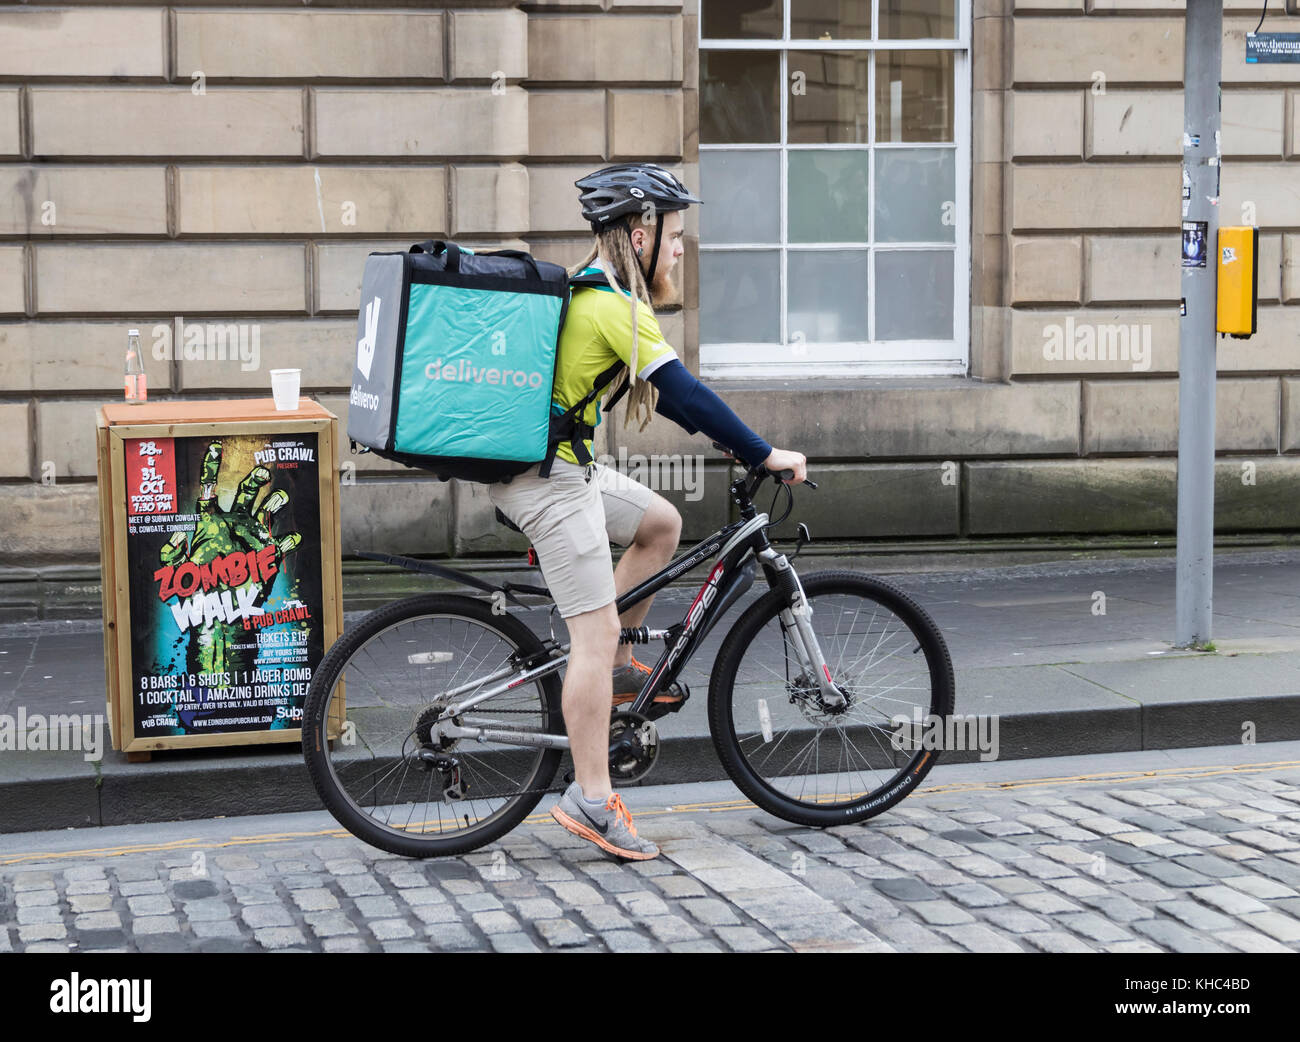 Deliveroo Stock Photos  amp  Deliveroo Stock Images - Alamy 904cf8254